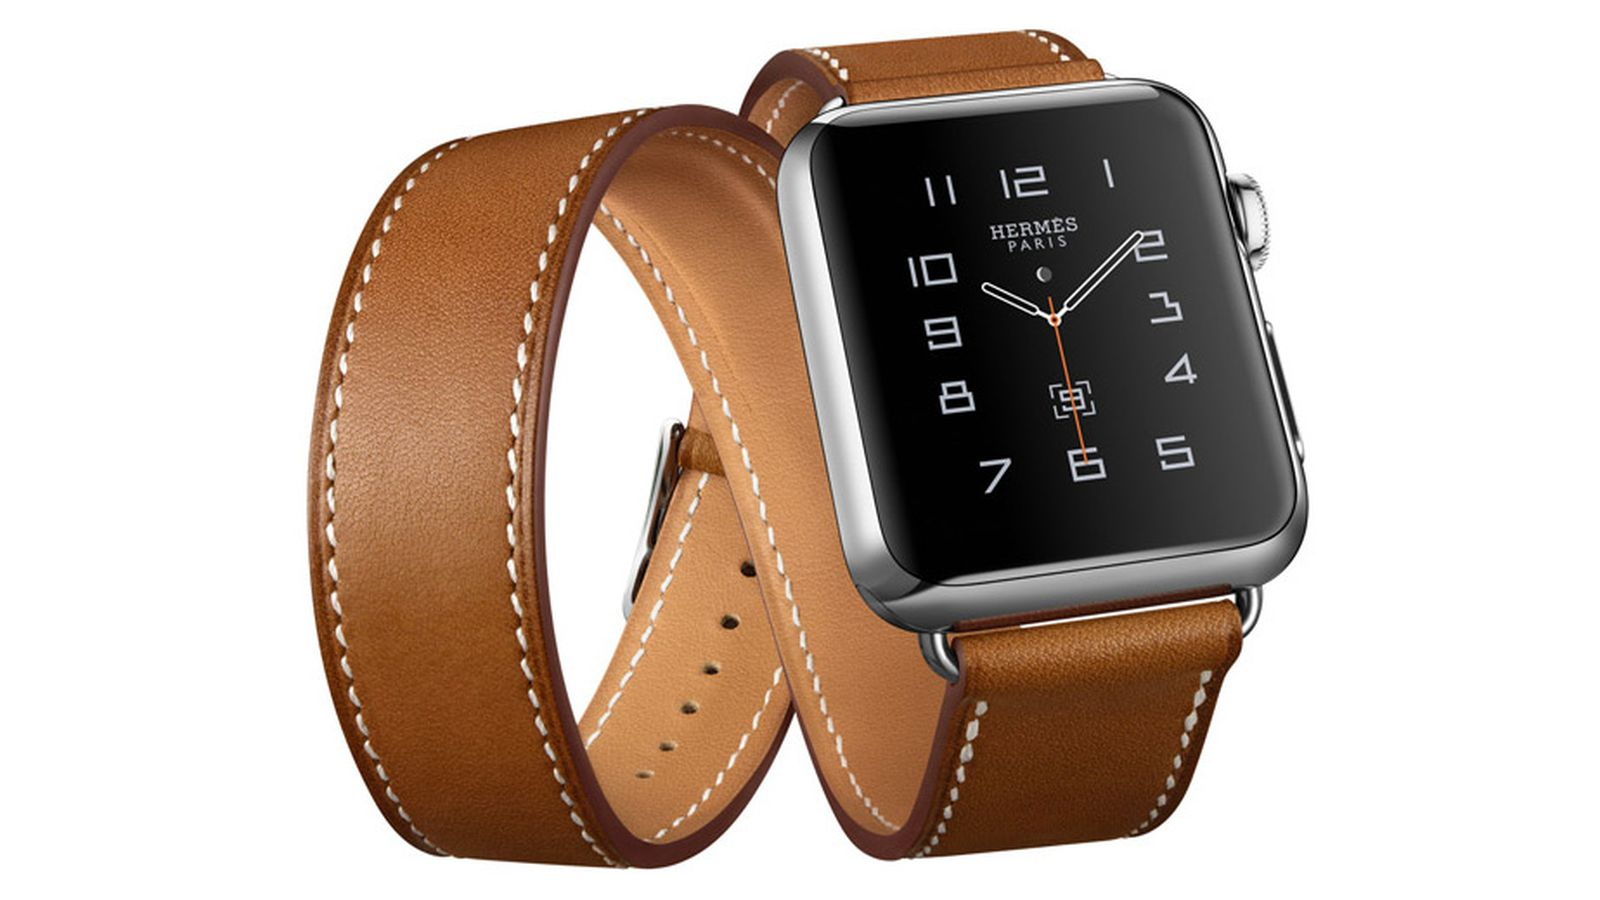 tan purse - The Apple Watch Herm��s is now available | The Verge